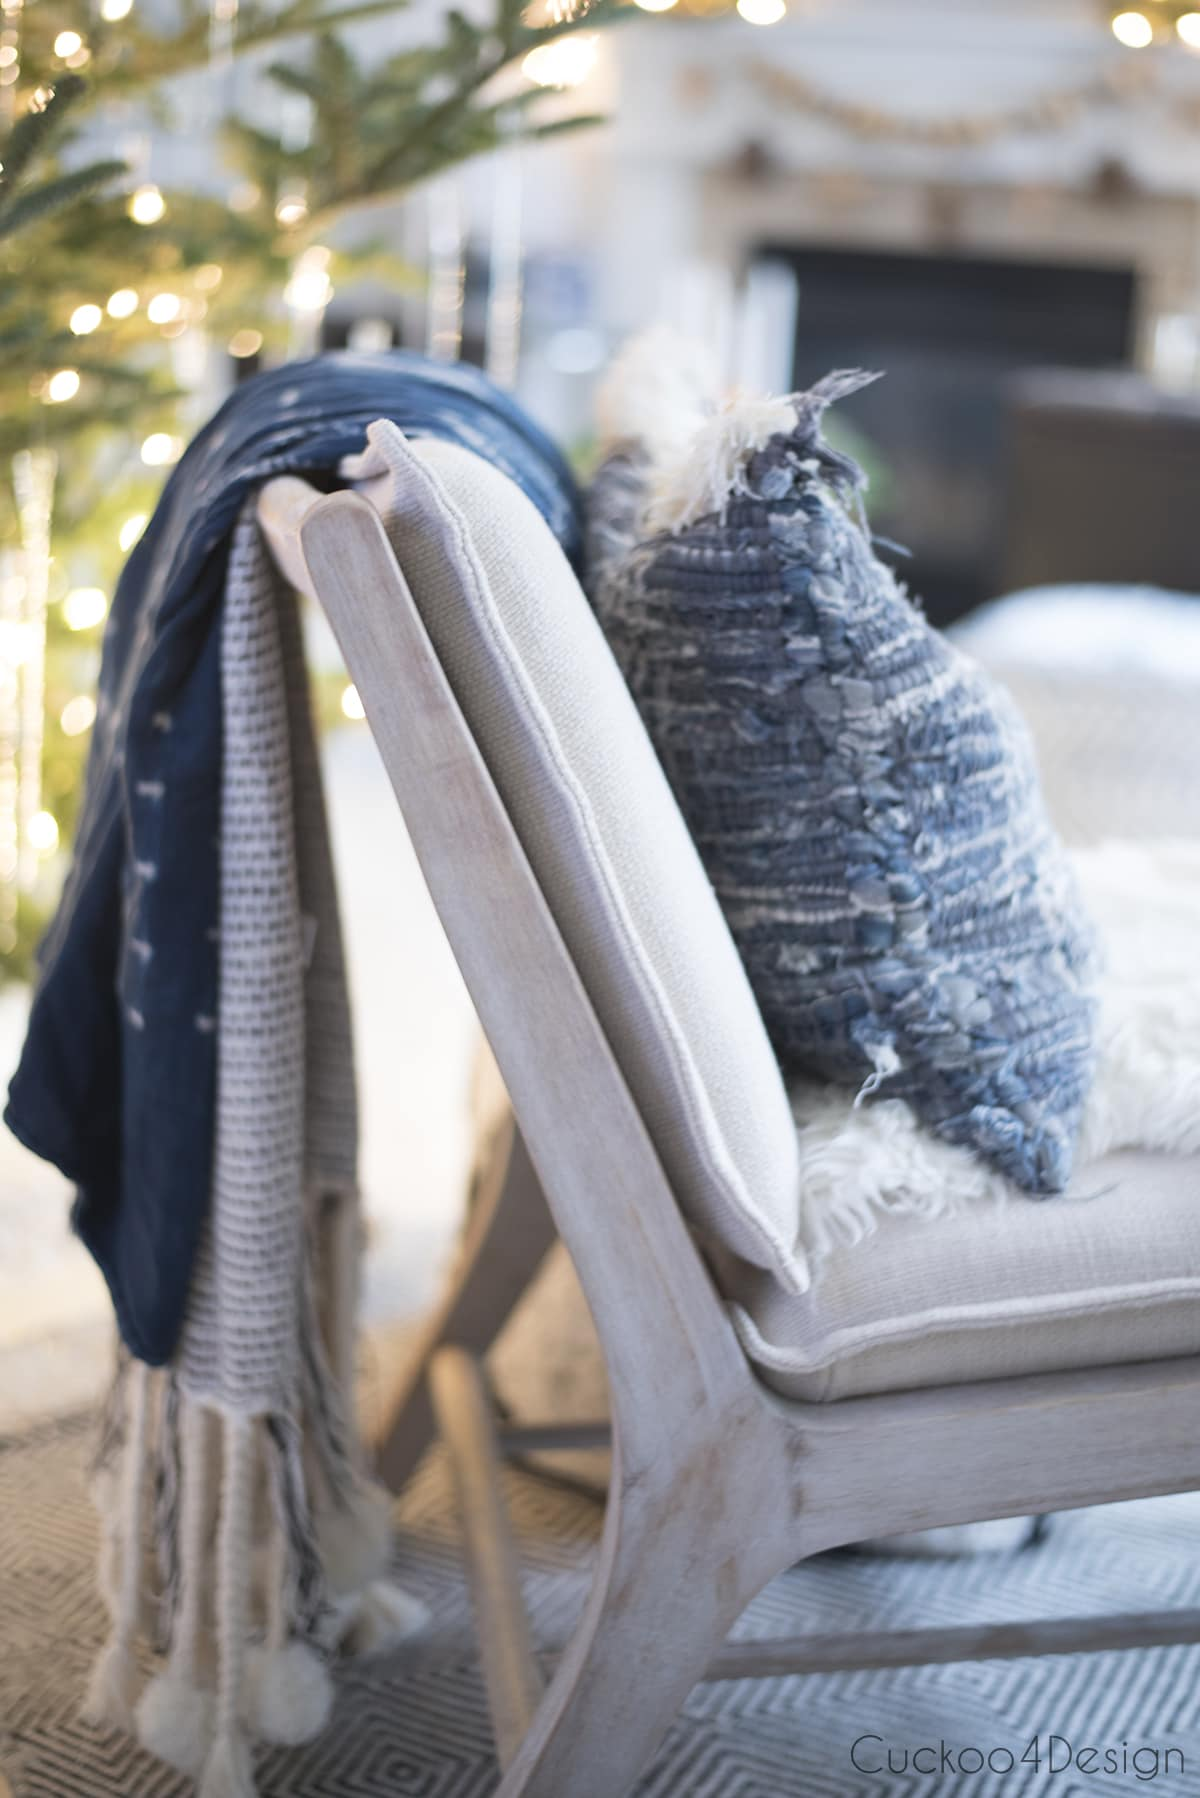 jeans accessories for natural Christmas decorations